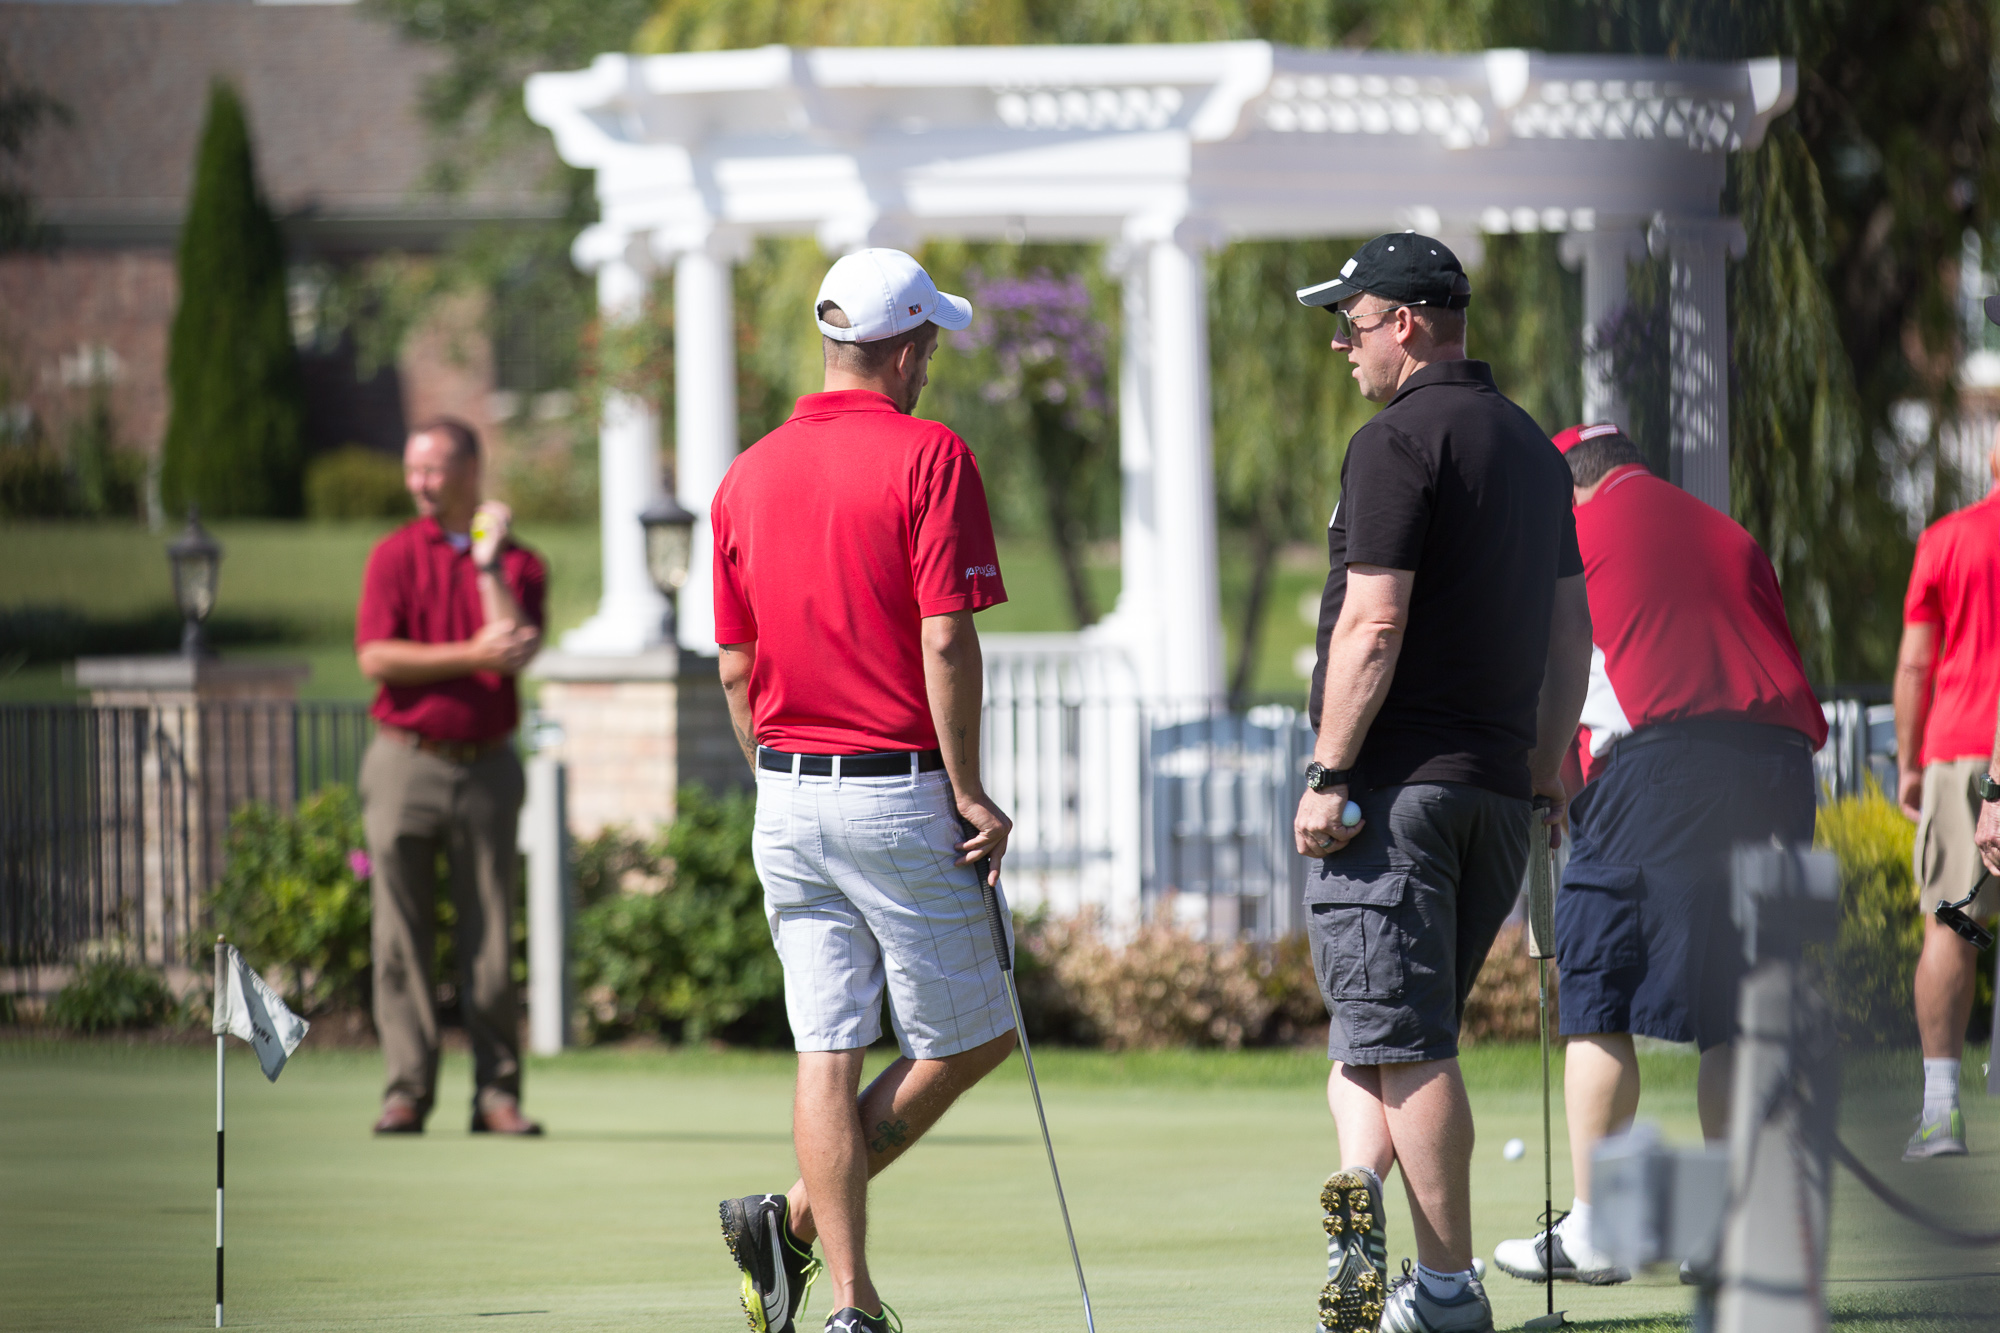 shrine of christs passion golf outing 2015 7